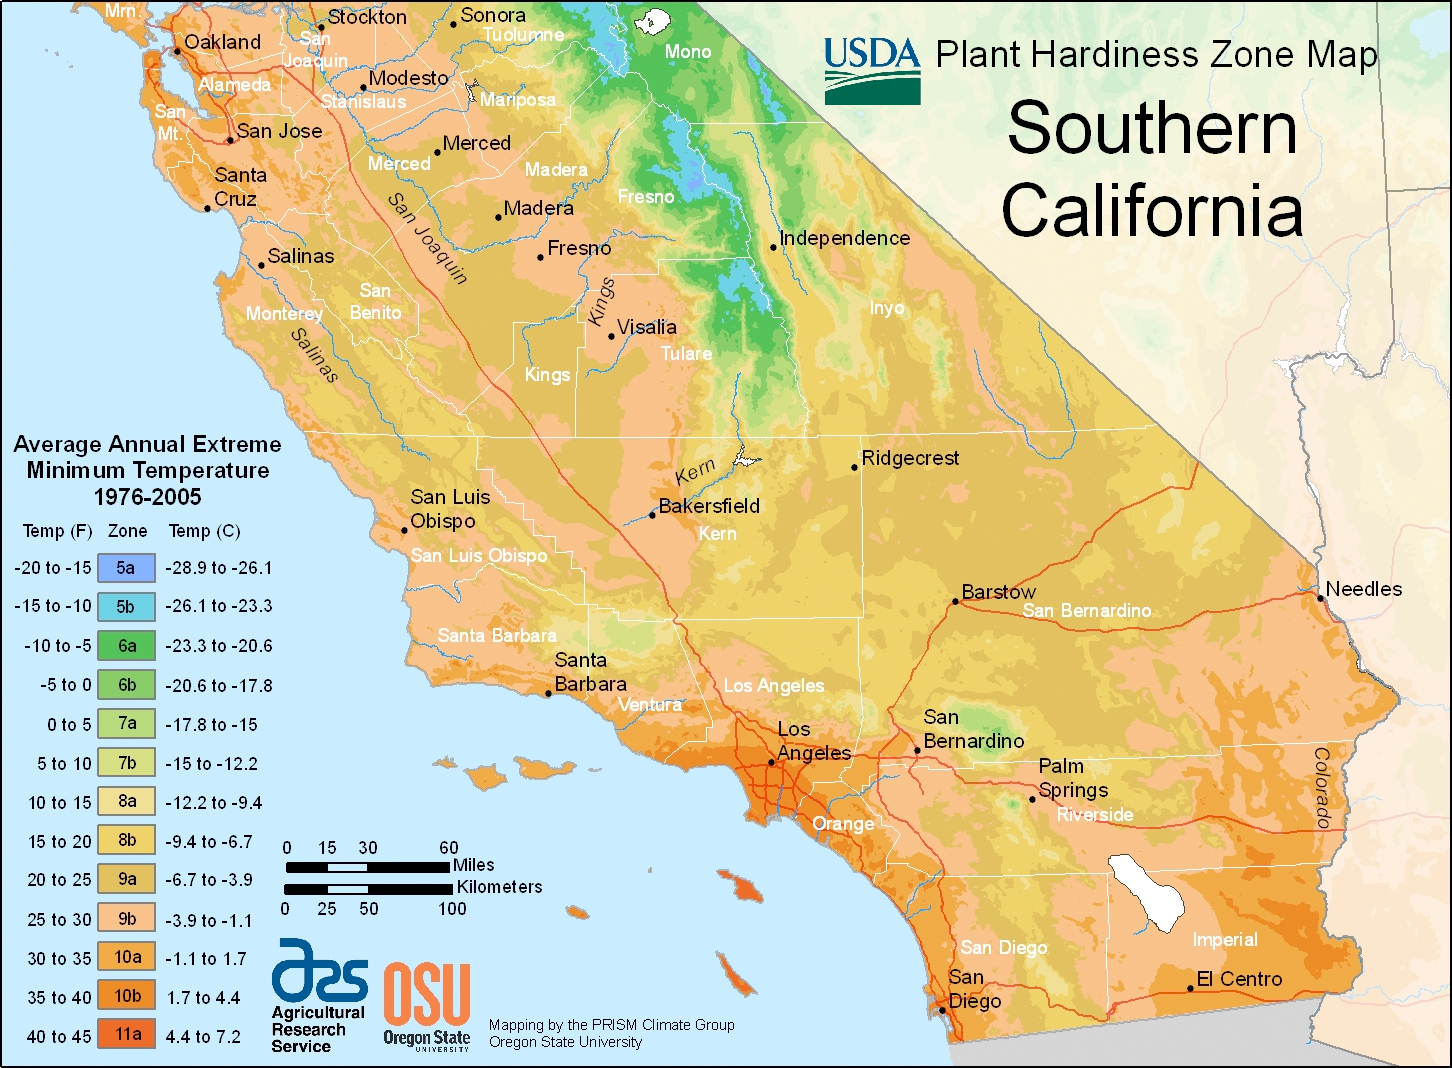 Zone Maps Maps Of California Climate Zone Map California Google Maps - Usda Zone Map California